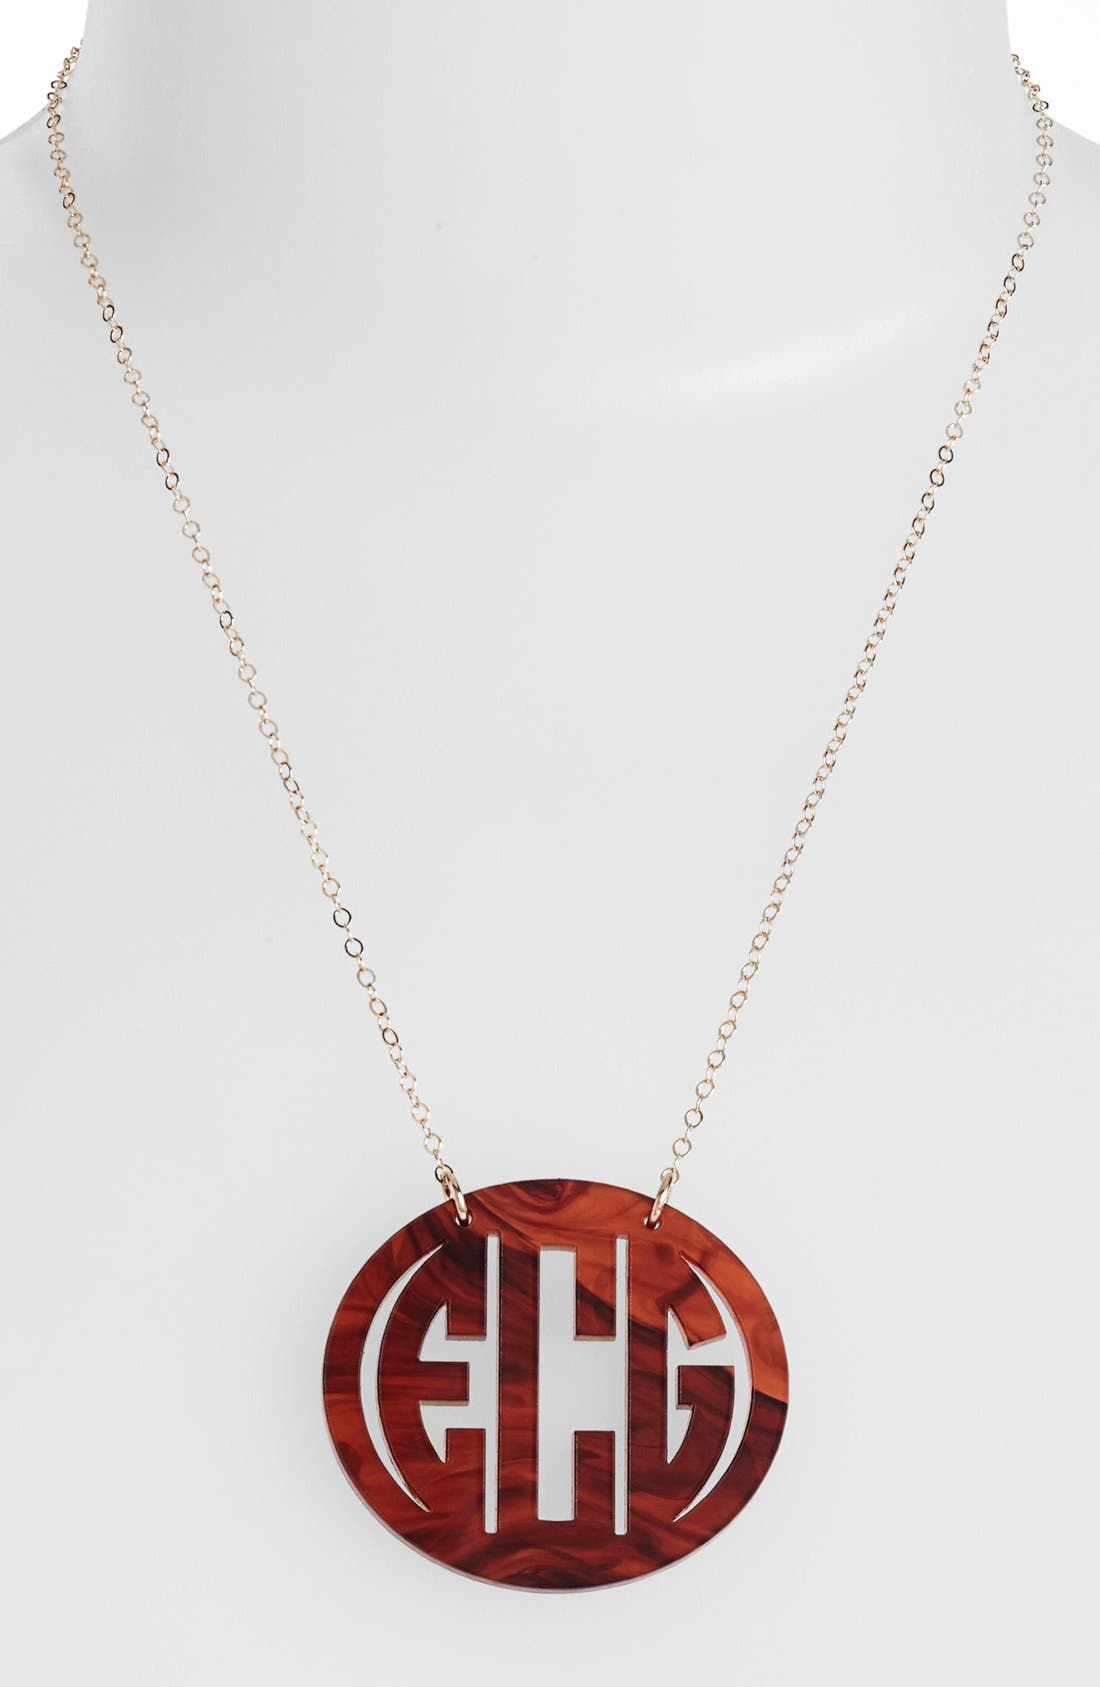 MOON AND LOLA Large Oval Personalized Monogram Pendant Necklace (Nordstrom Exclusive) in Tortoise/ Gold